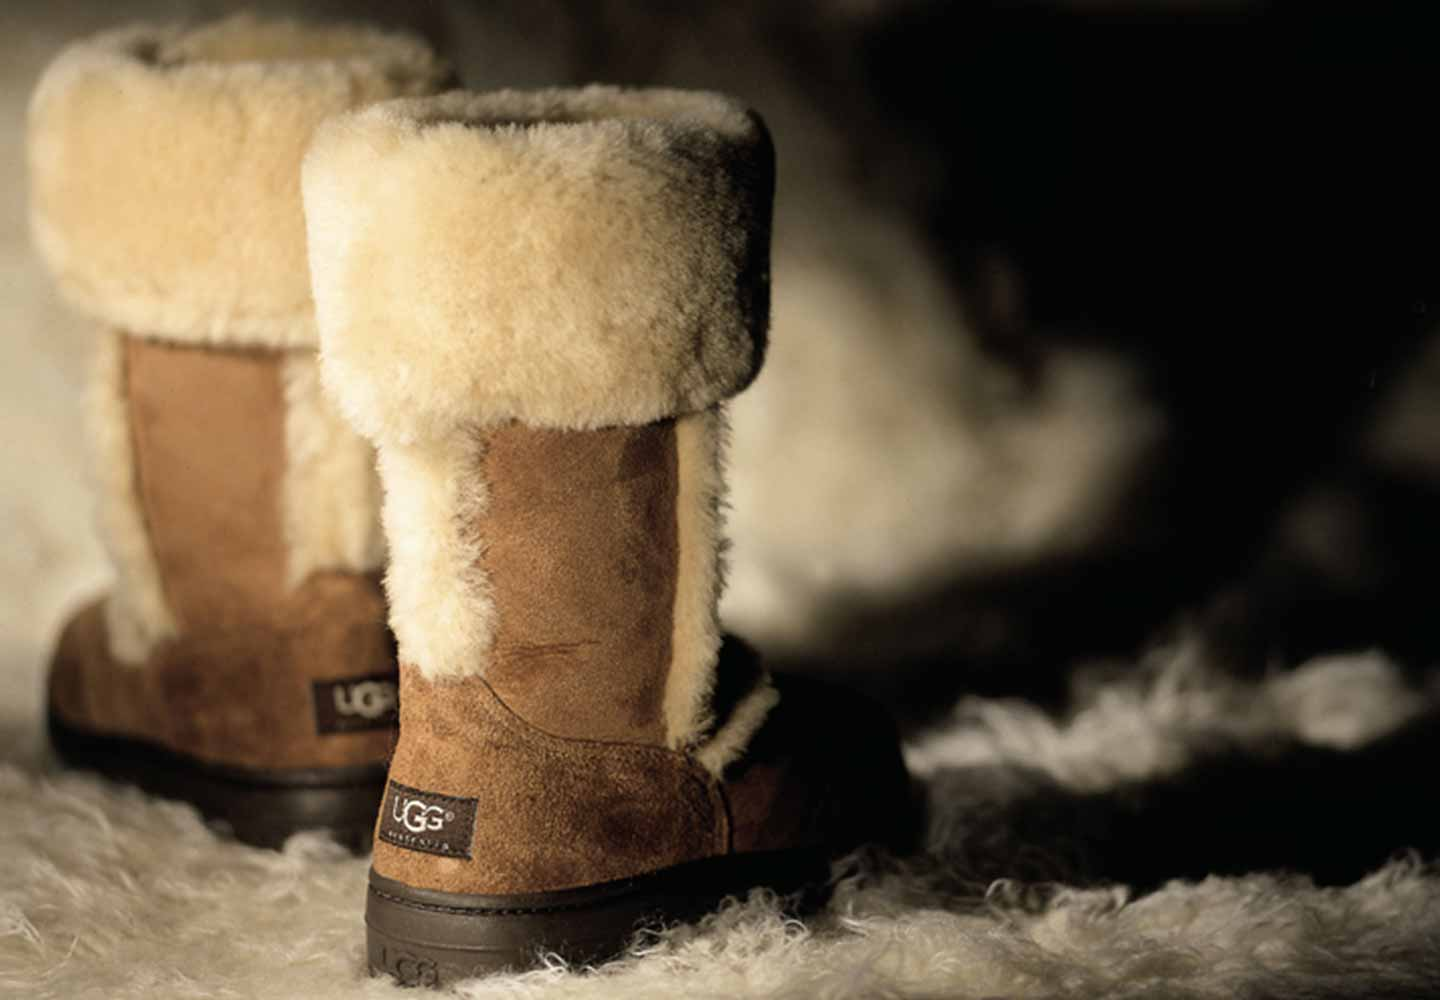 b5e8146508a About UGG | The Birth of an Icon | Sheepskin Boots | UGG